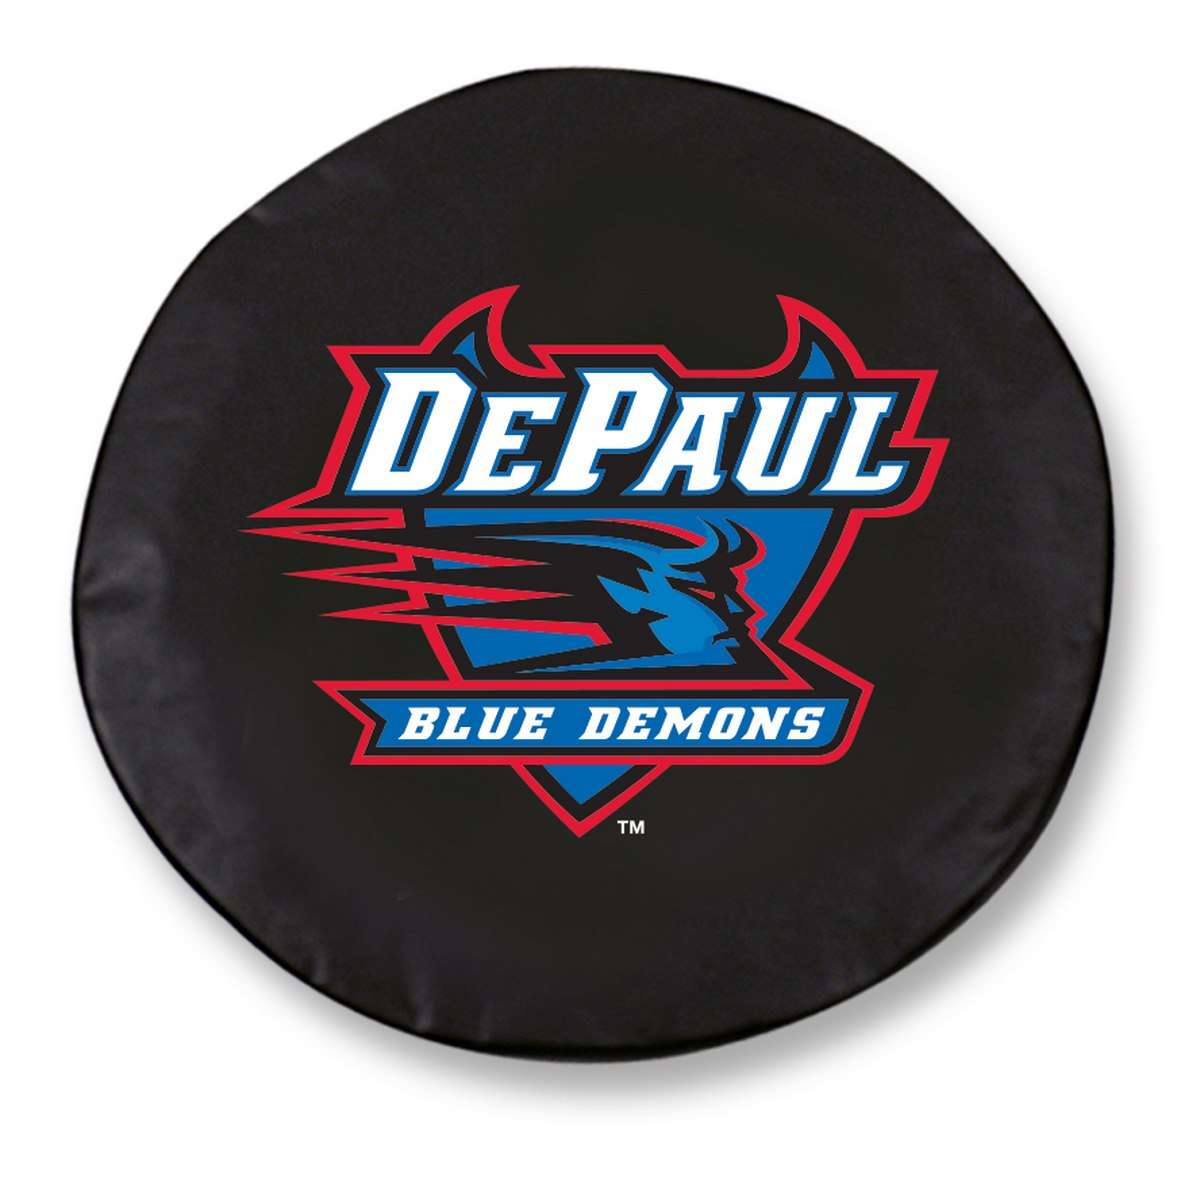 "27"" x 8"" Black DePaul University Vinyl Tire Cover"